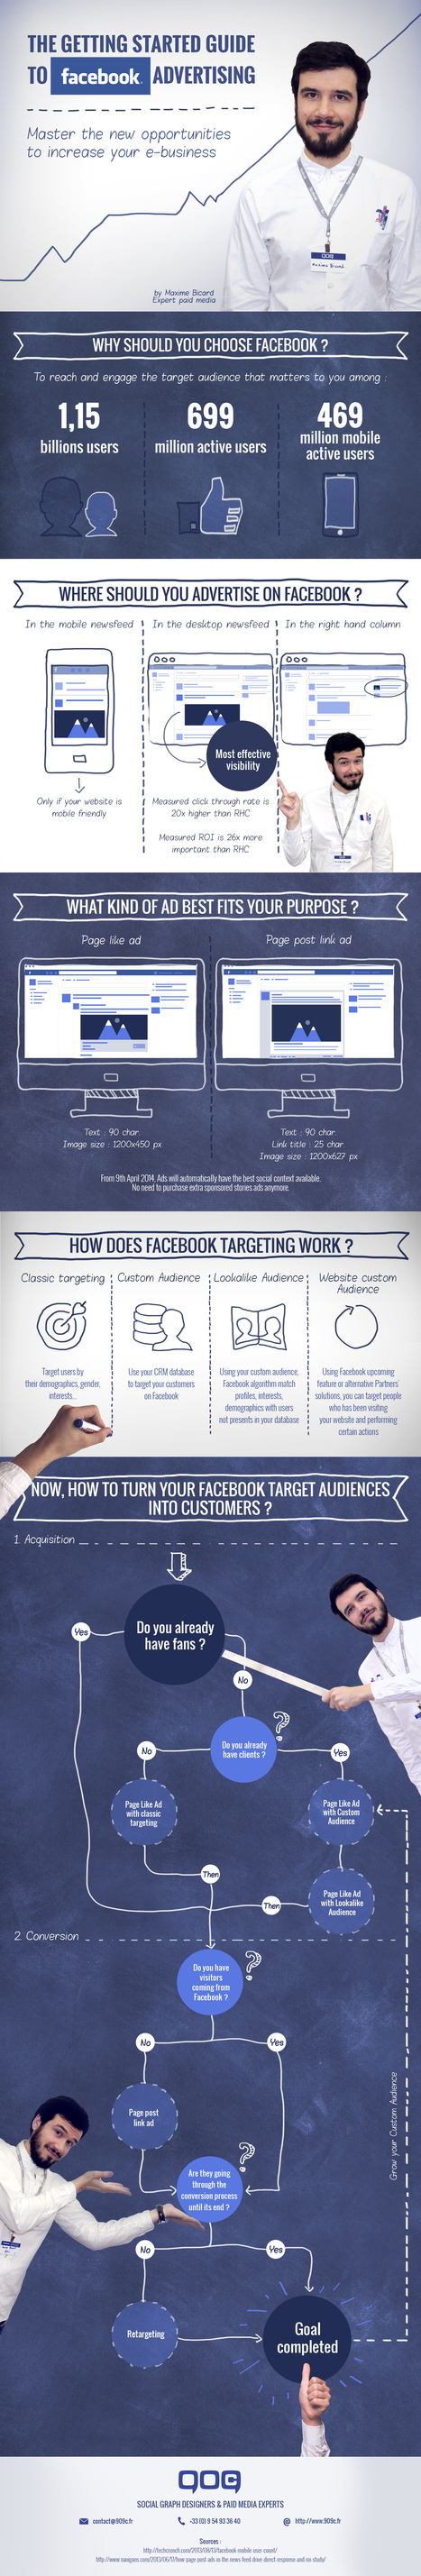 Infographic: Getting started with Facebook Ads | Facebook for Business Marketing | Scoop.it